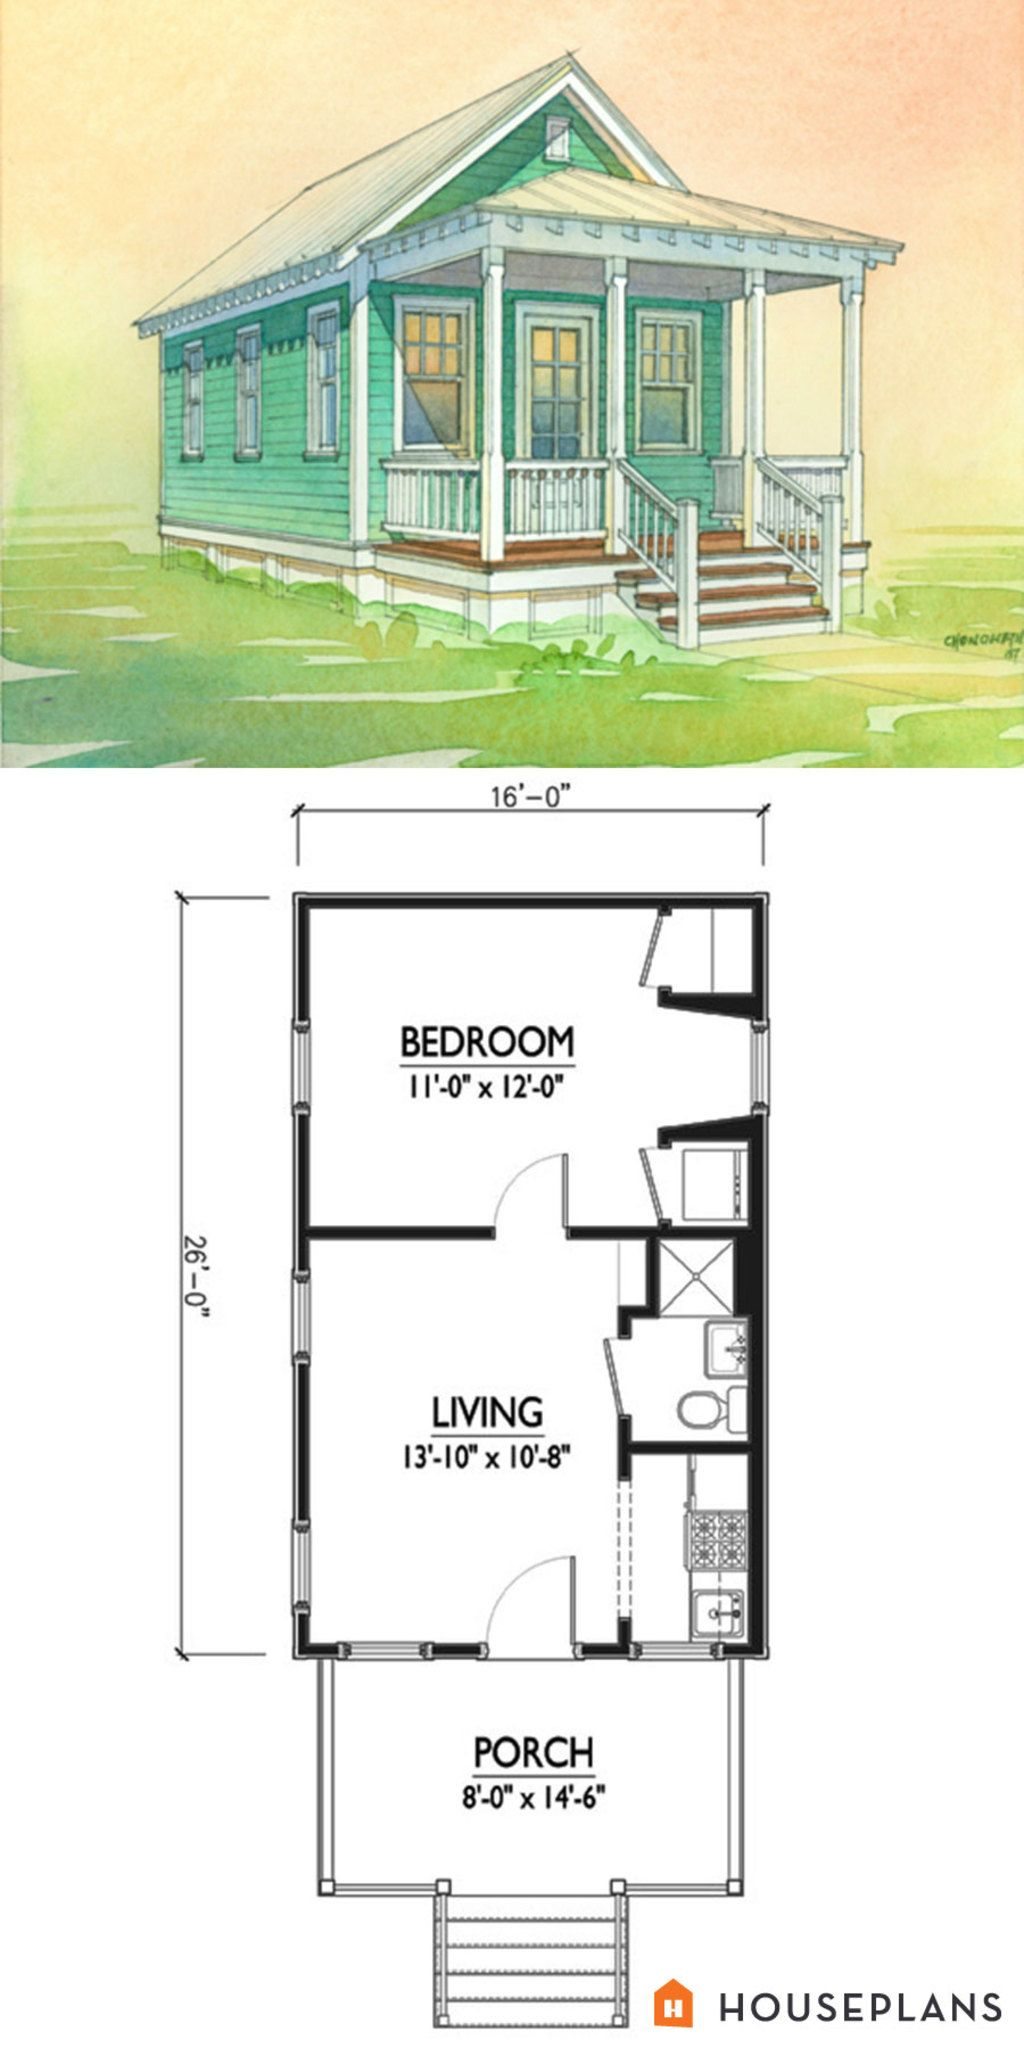 Cottage Style House Plan 1 Beds 1 Baths 416 Sq Ft Plan 514 2 Cottage House Plans Tiny House Floor Plans Cottage Style House Plans